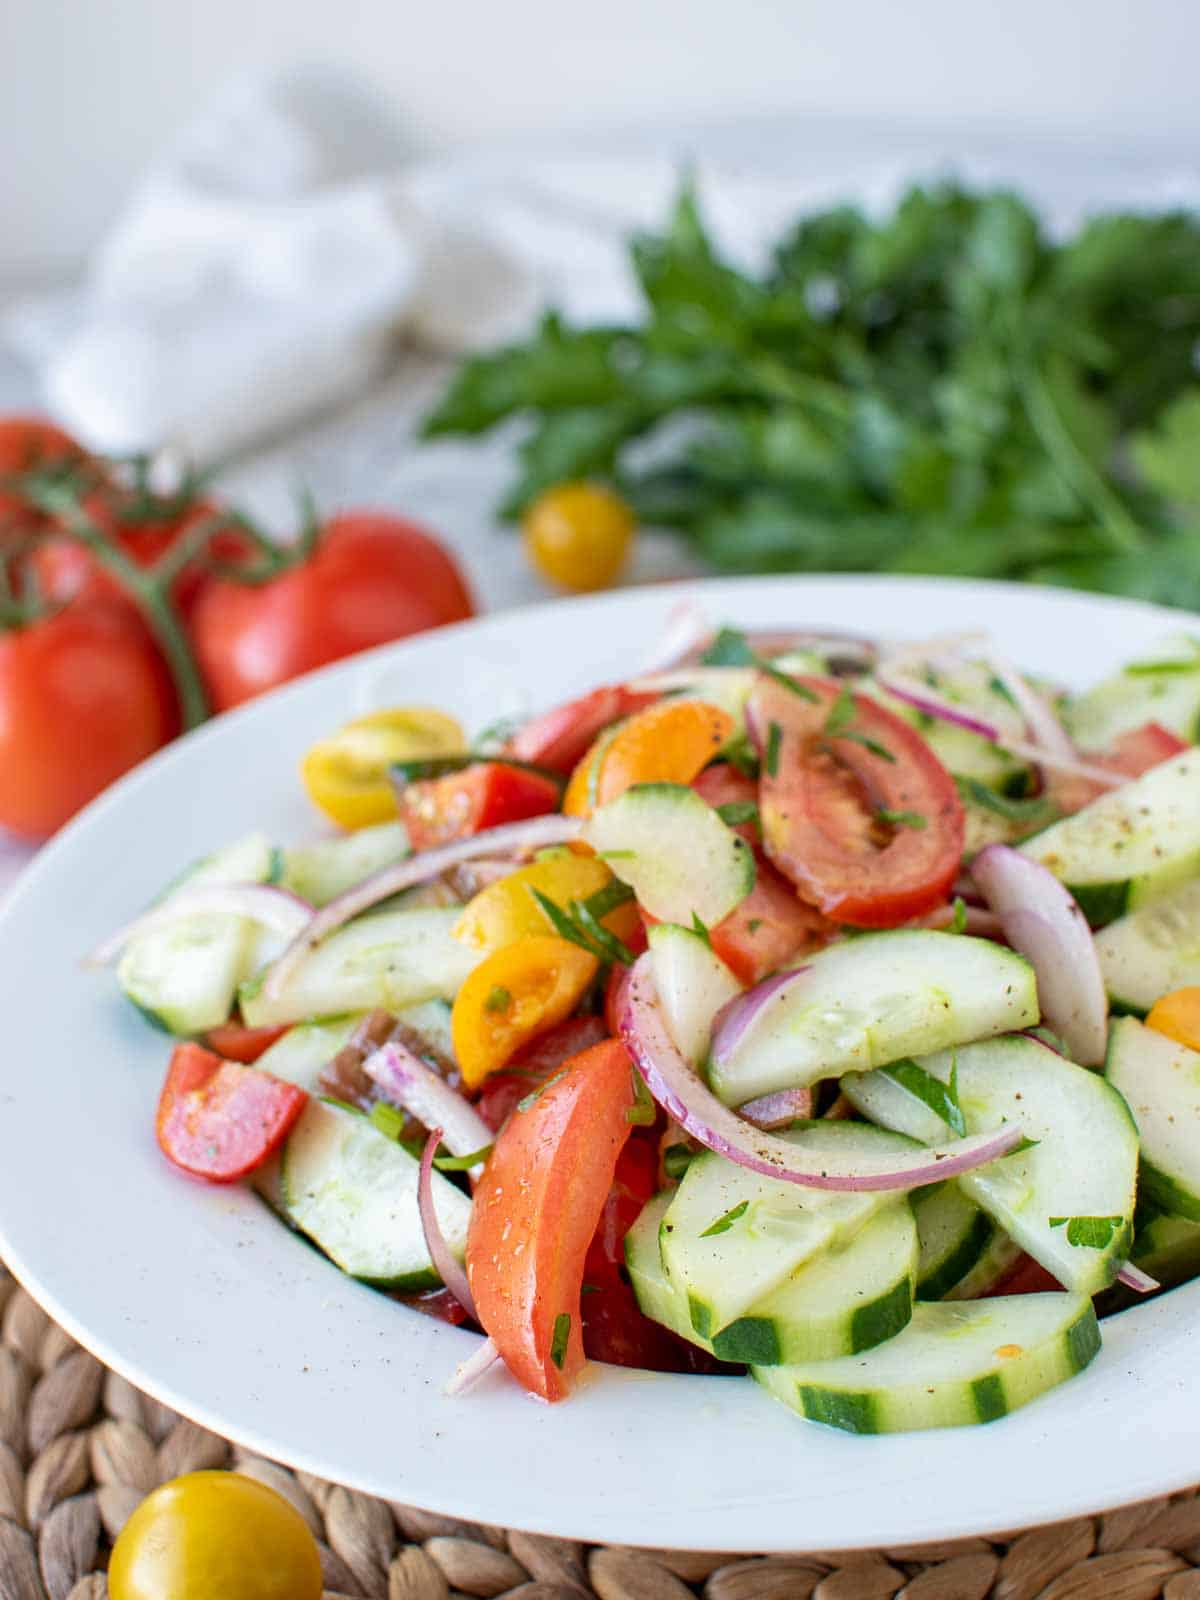 cucumber tomato onion salad on white plate with tomatoes and parsley in the background